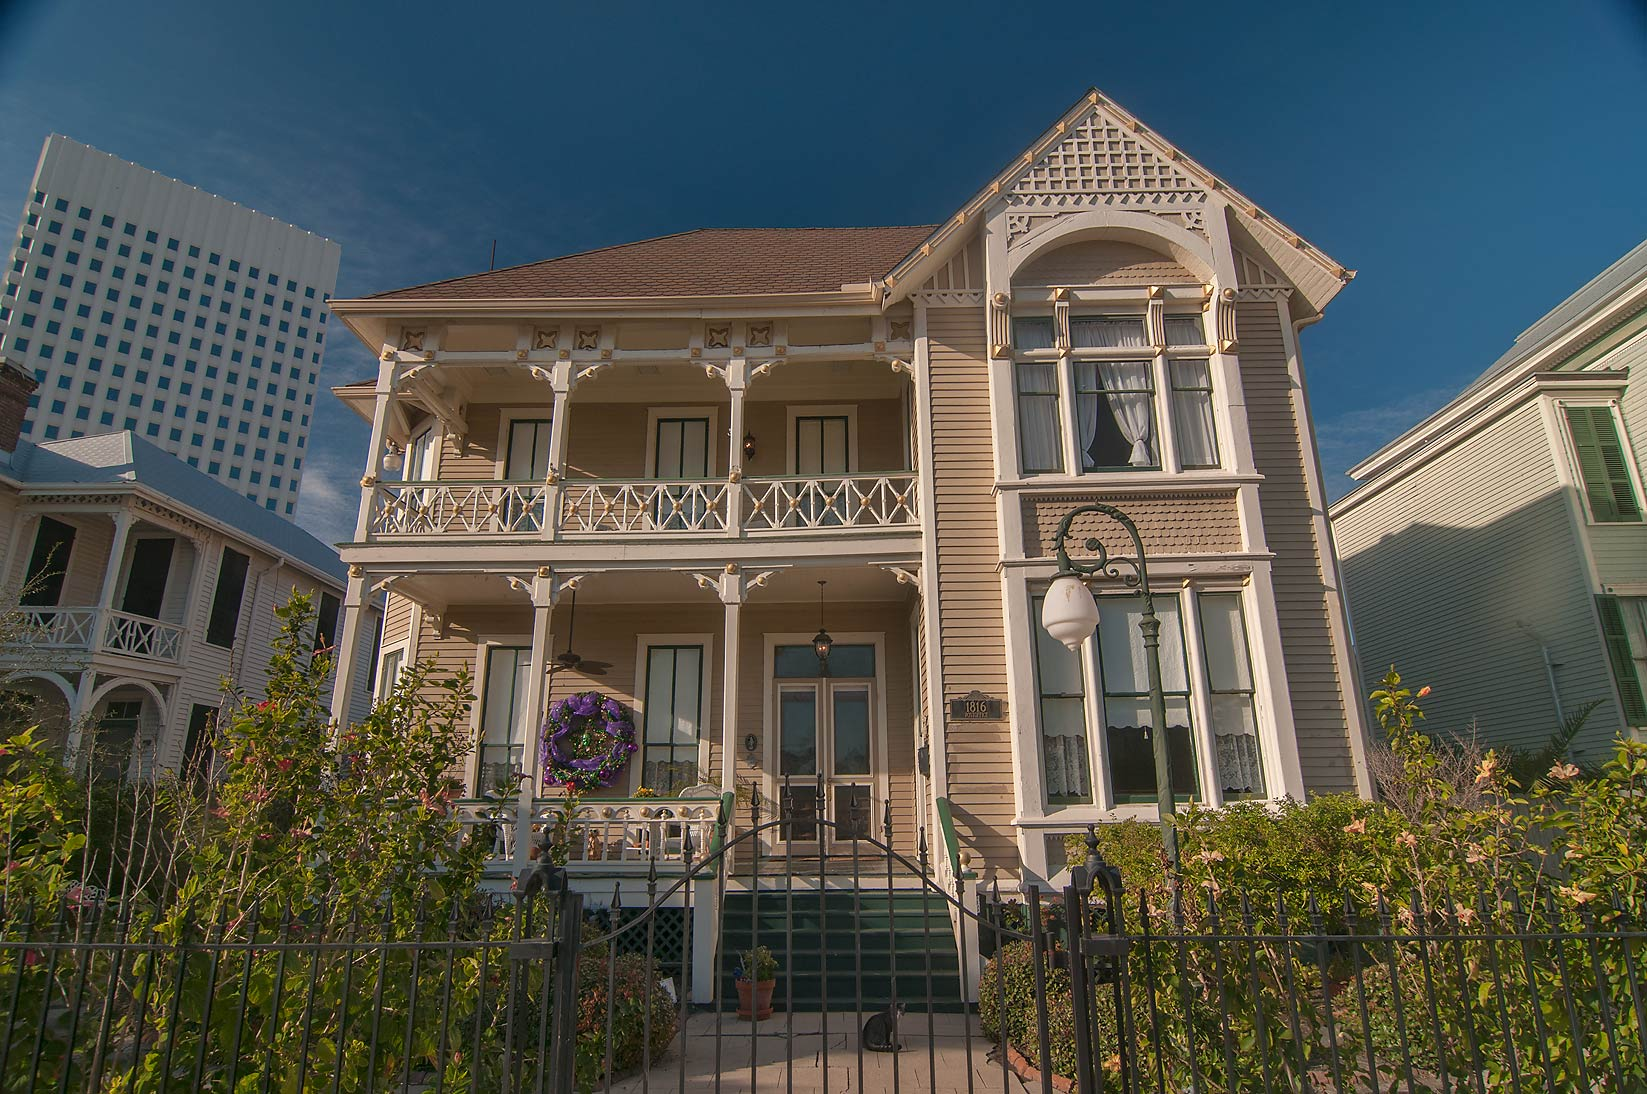 Galveston, East End Historic District, Texas  - Area of 1816 Ave. E. Galveston, Texas